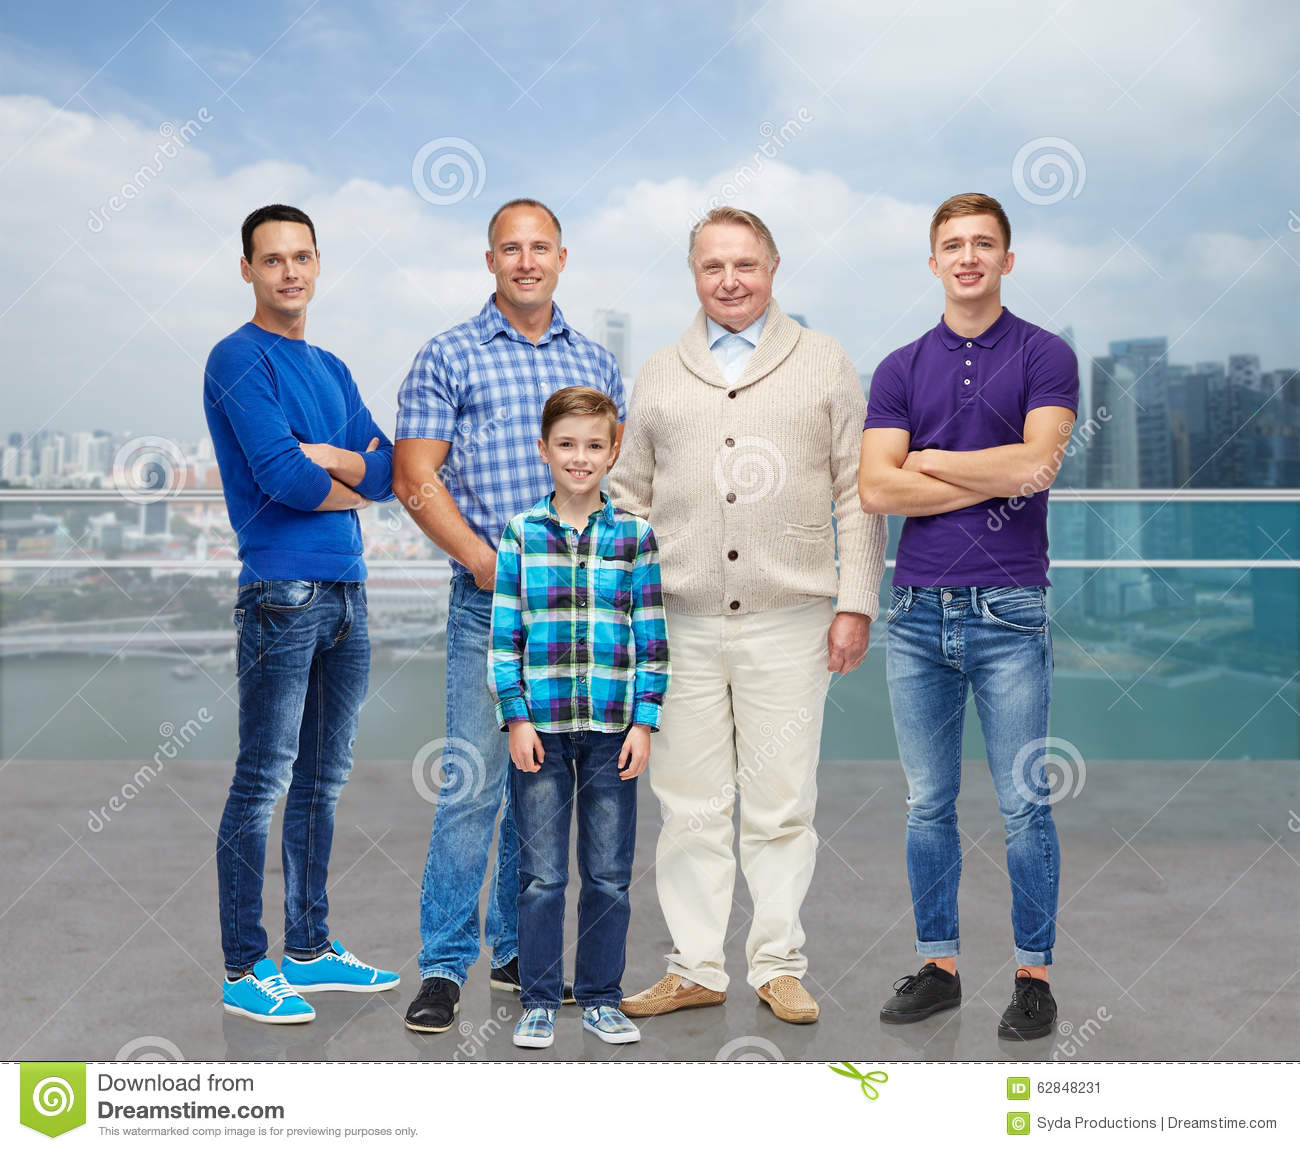 Men S Health Singapore: Group Of Smiling Men And Boy Stock Image